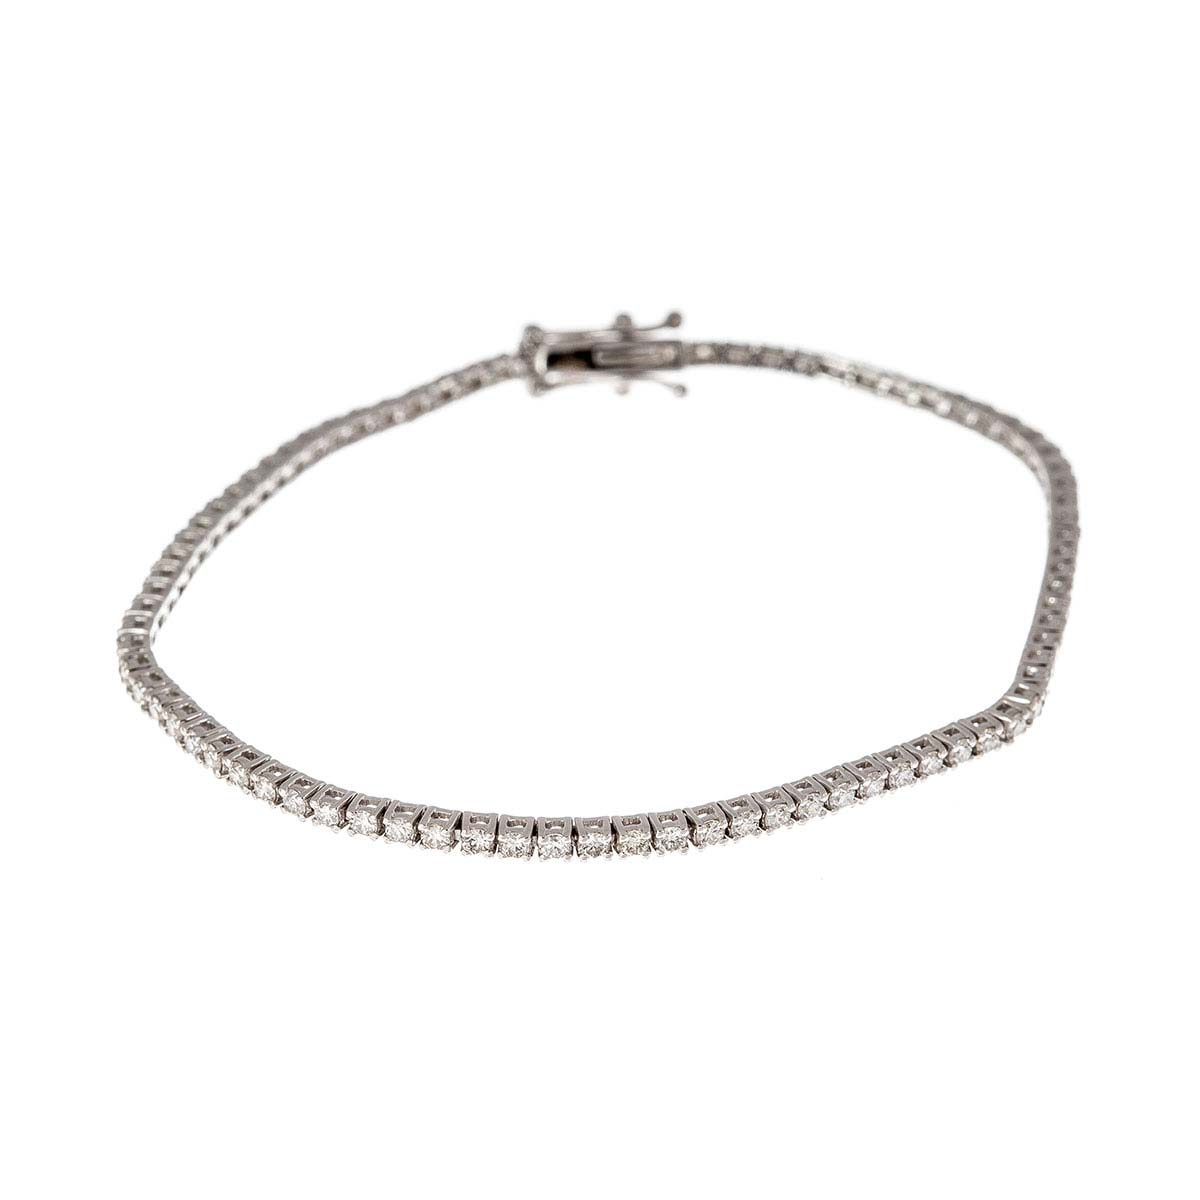 18ct white gold and diamond tennis bracelet